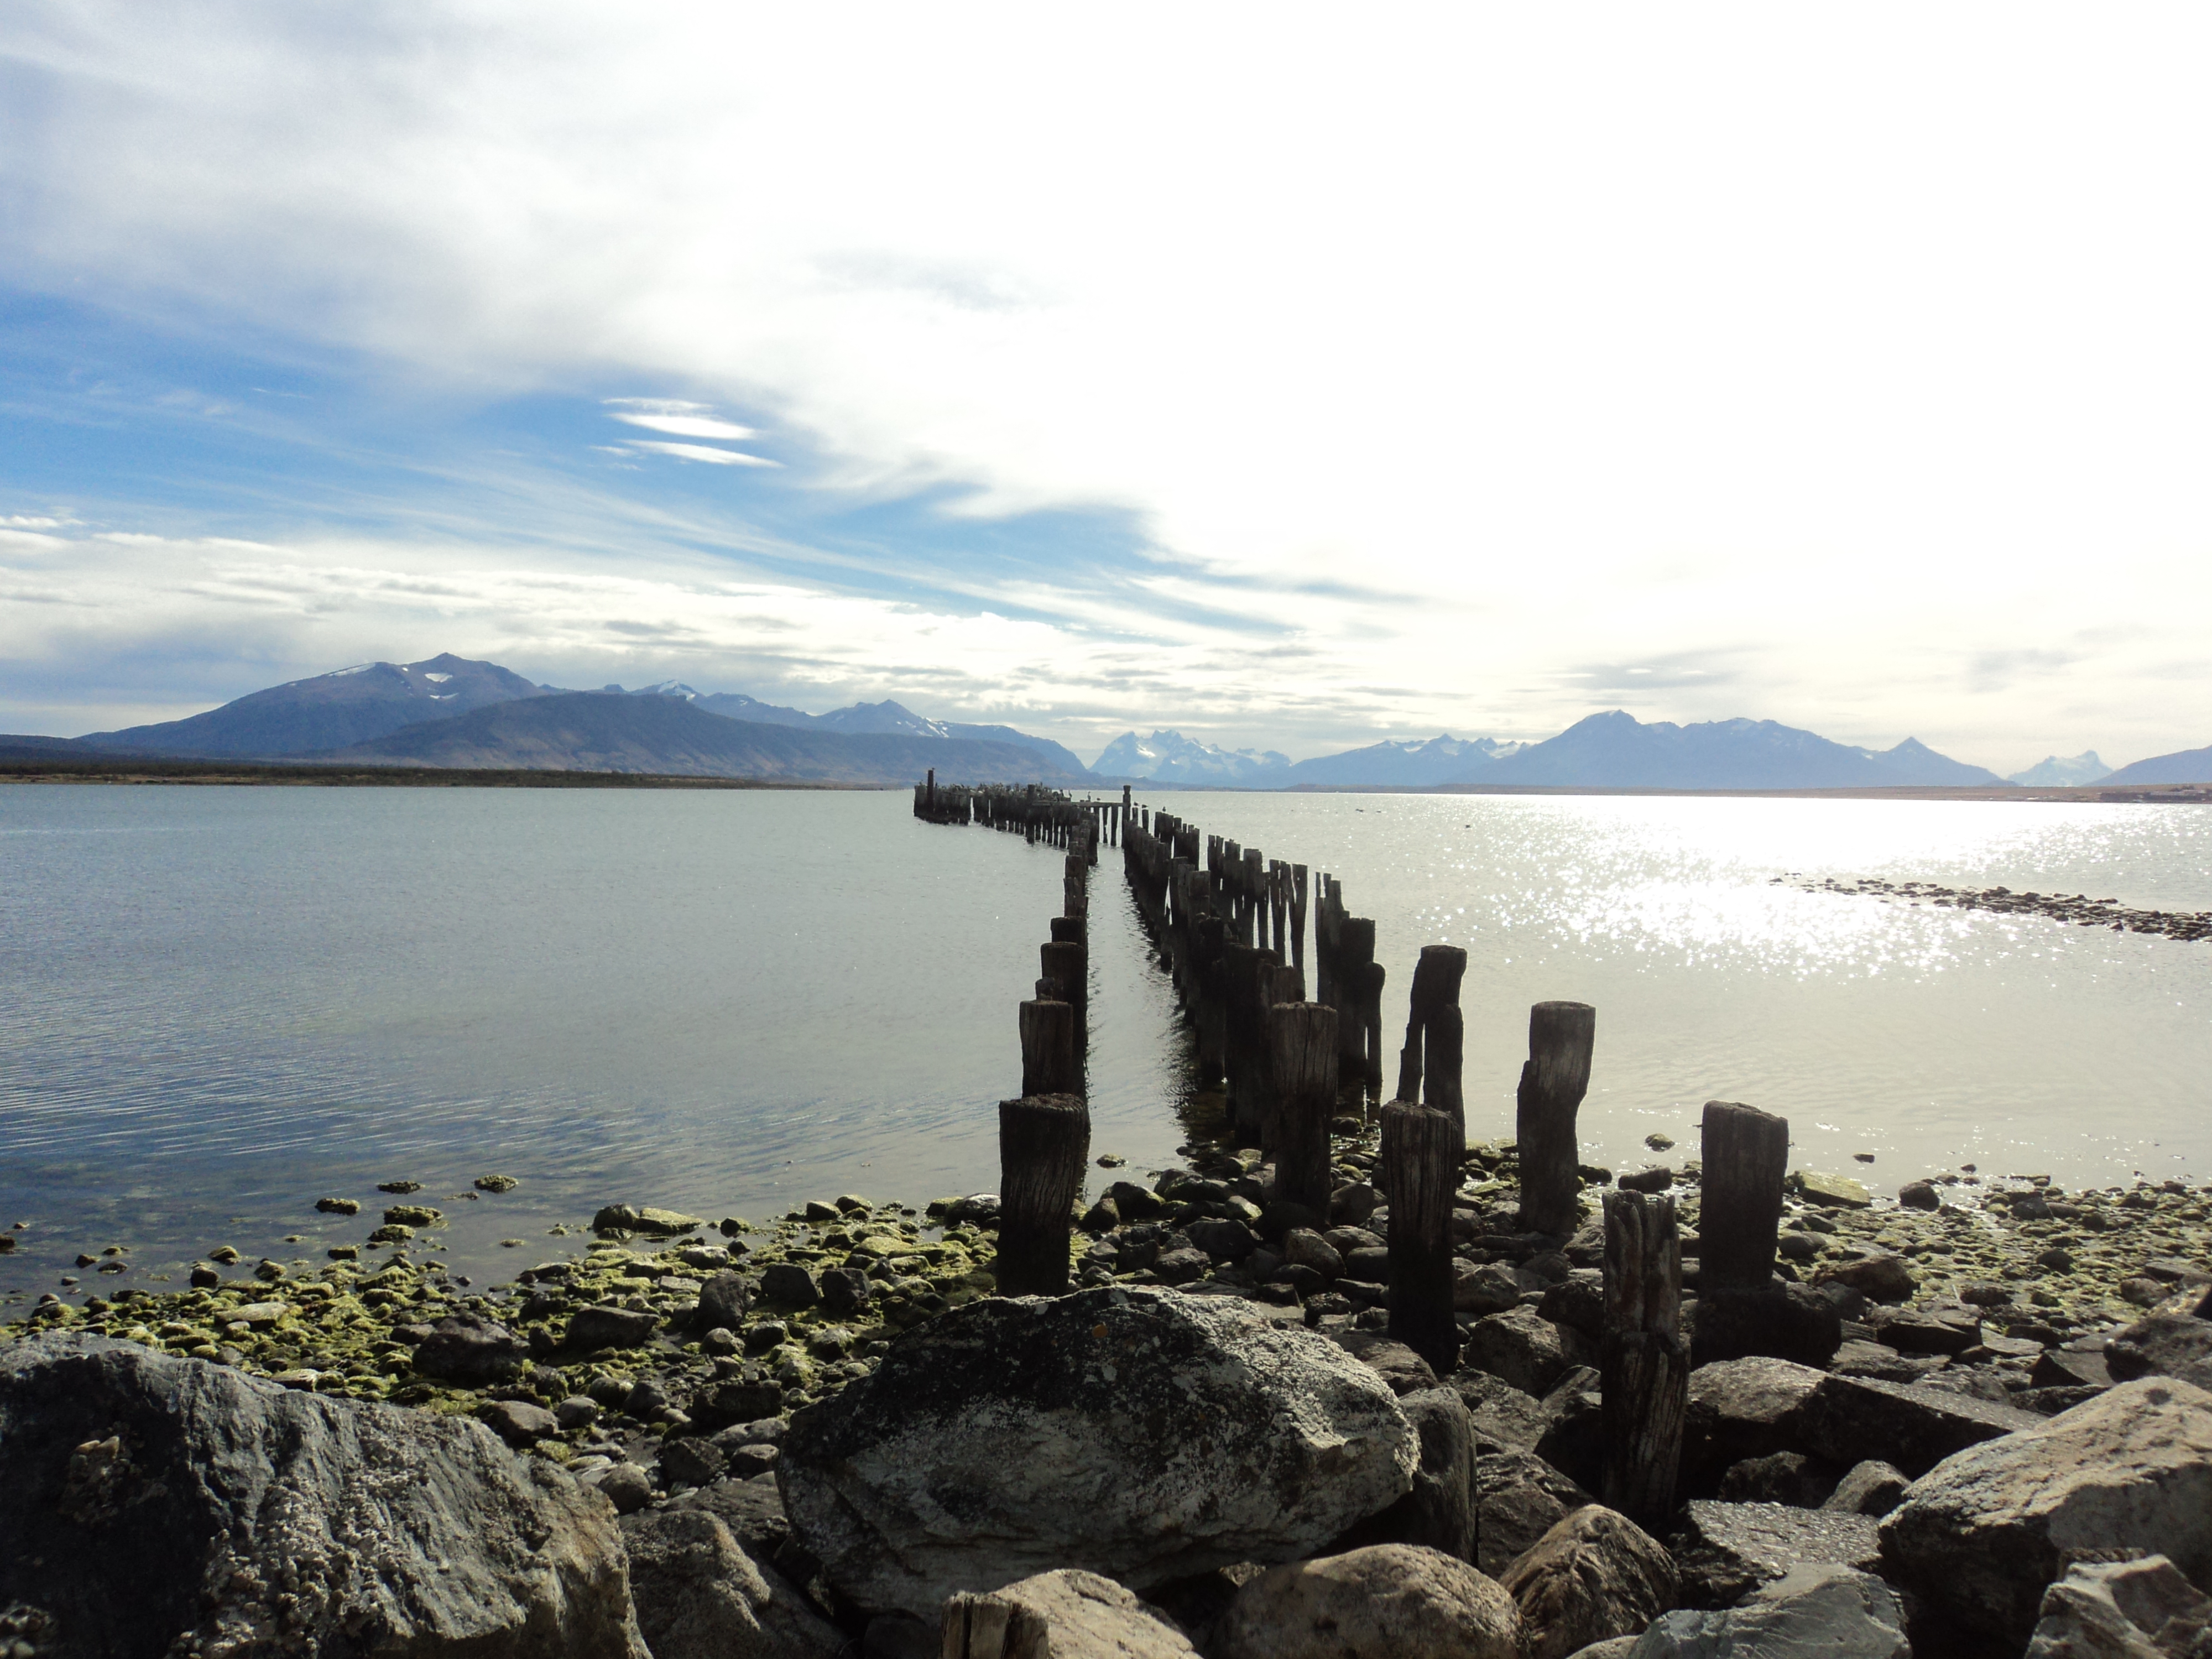 Day 11 04 - Puerto Natales